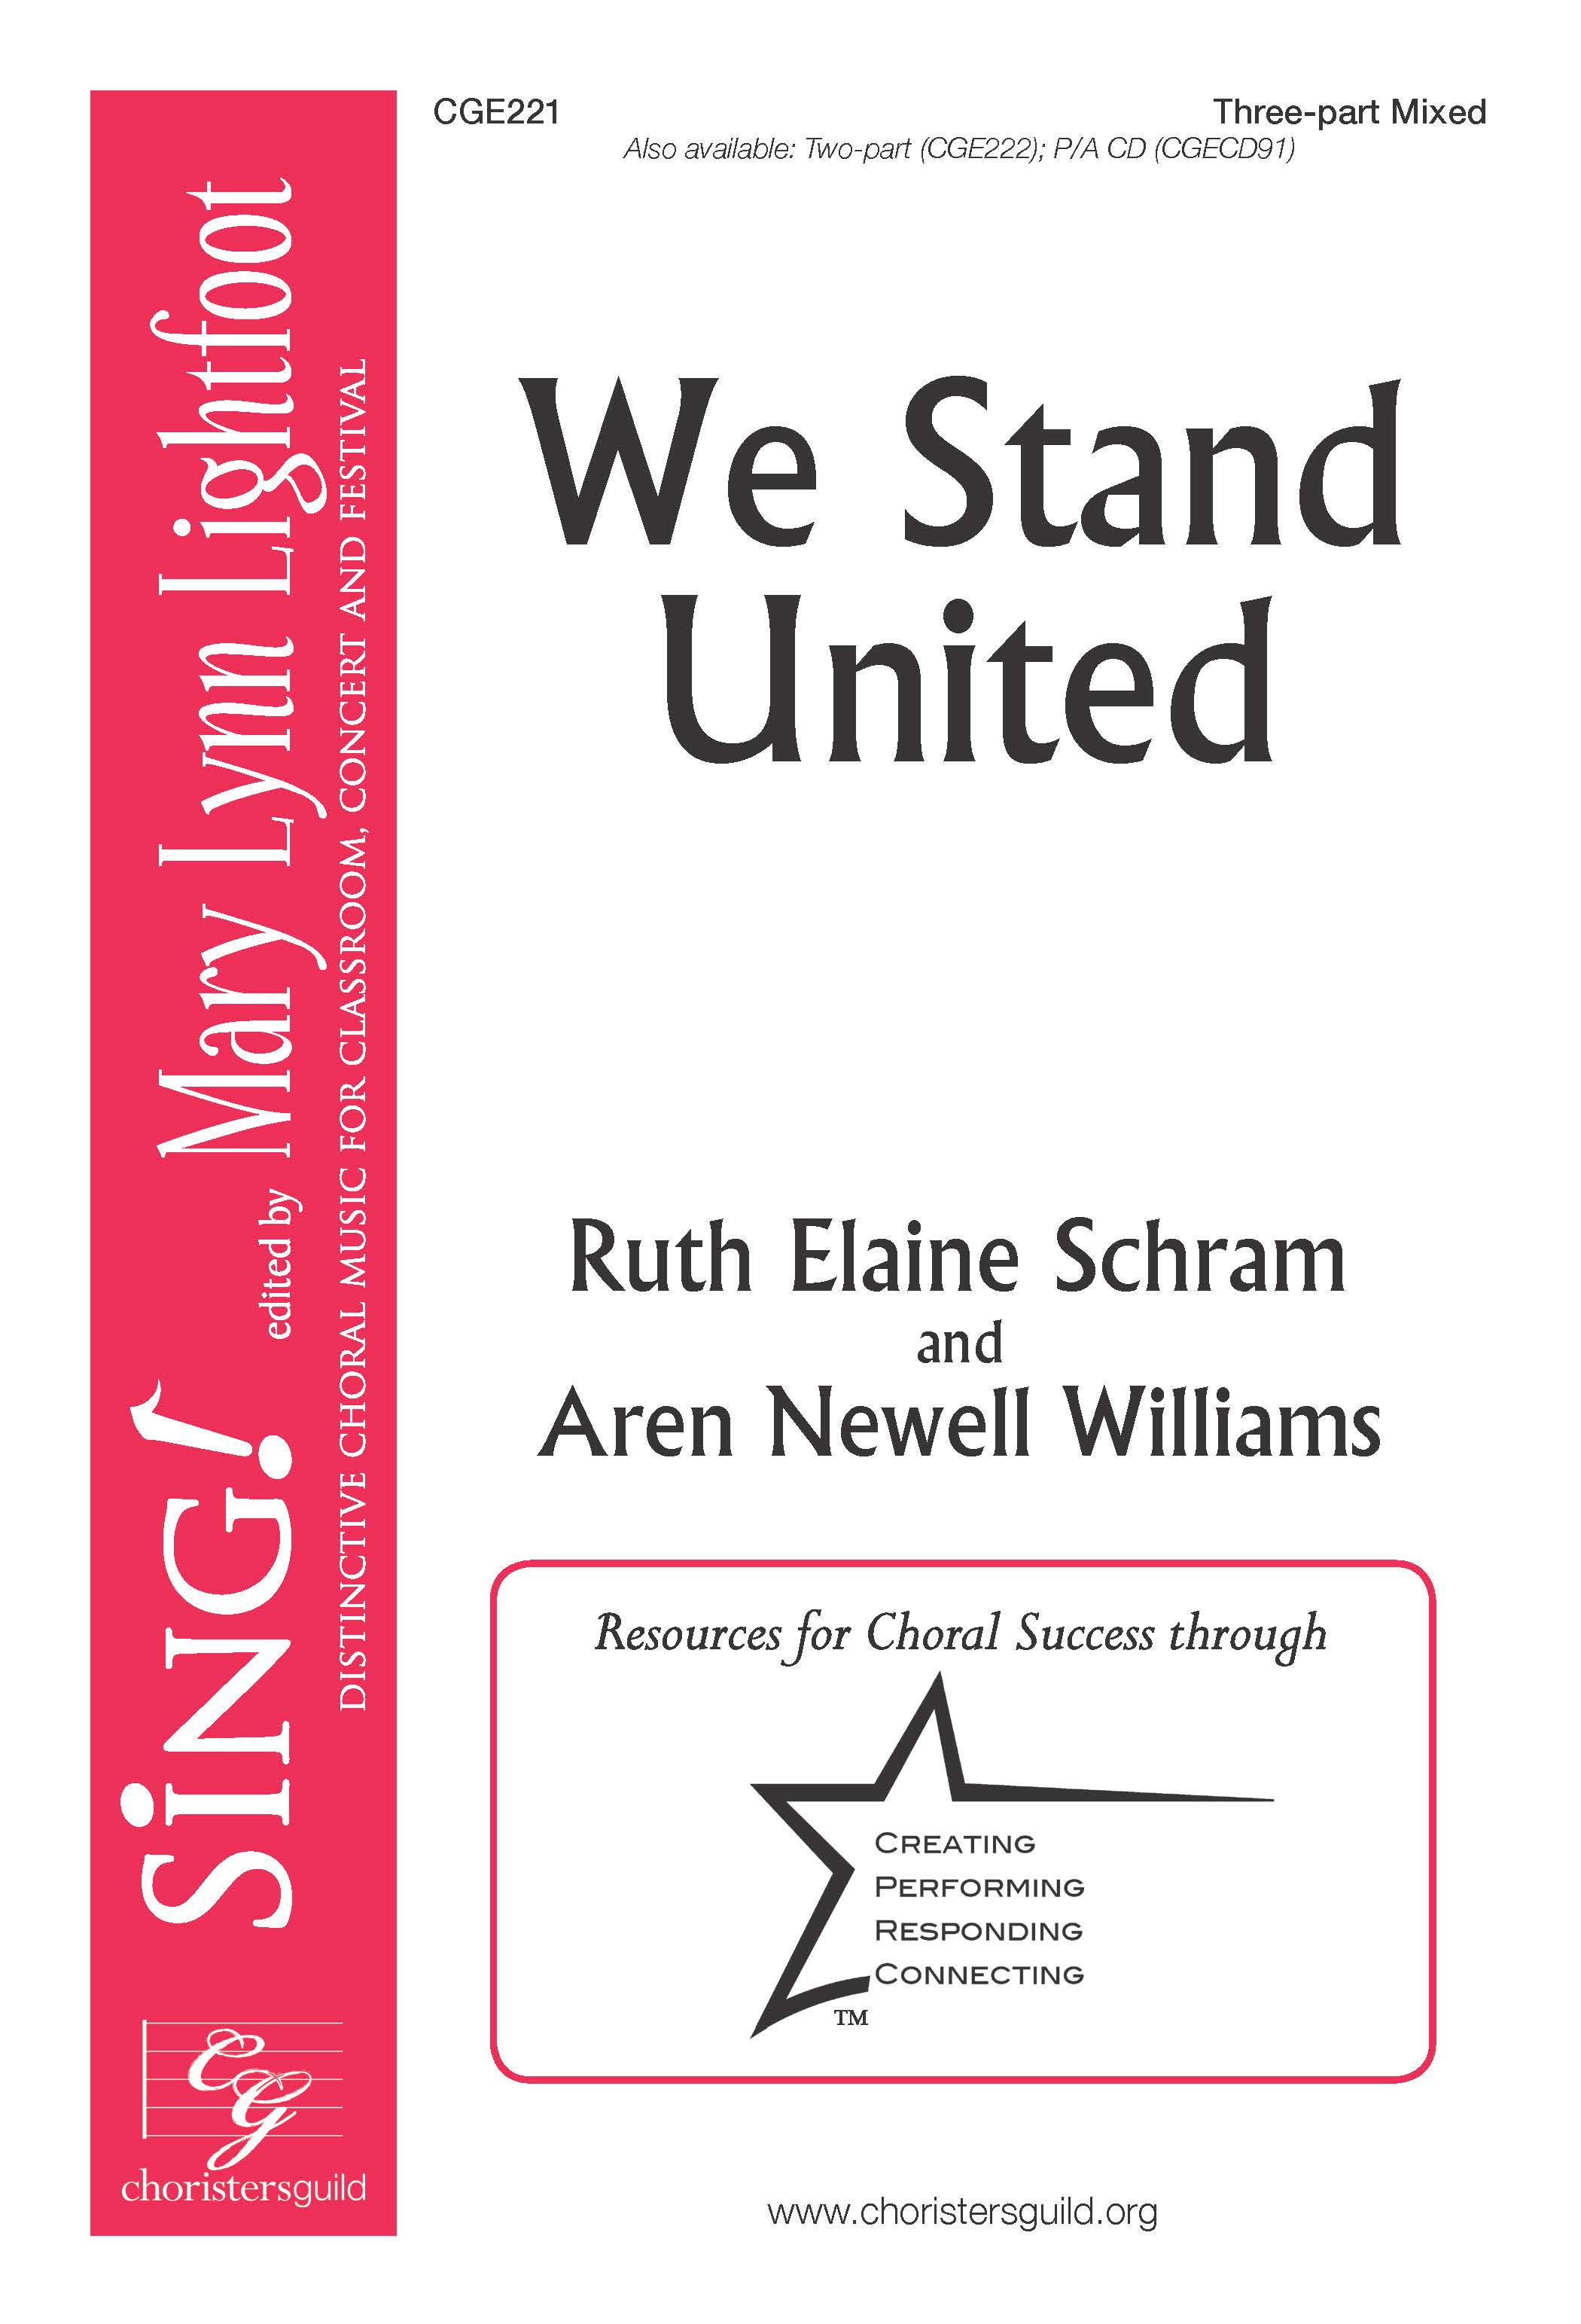 We Stand United Three-part Mixed